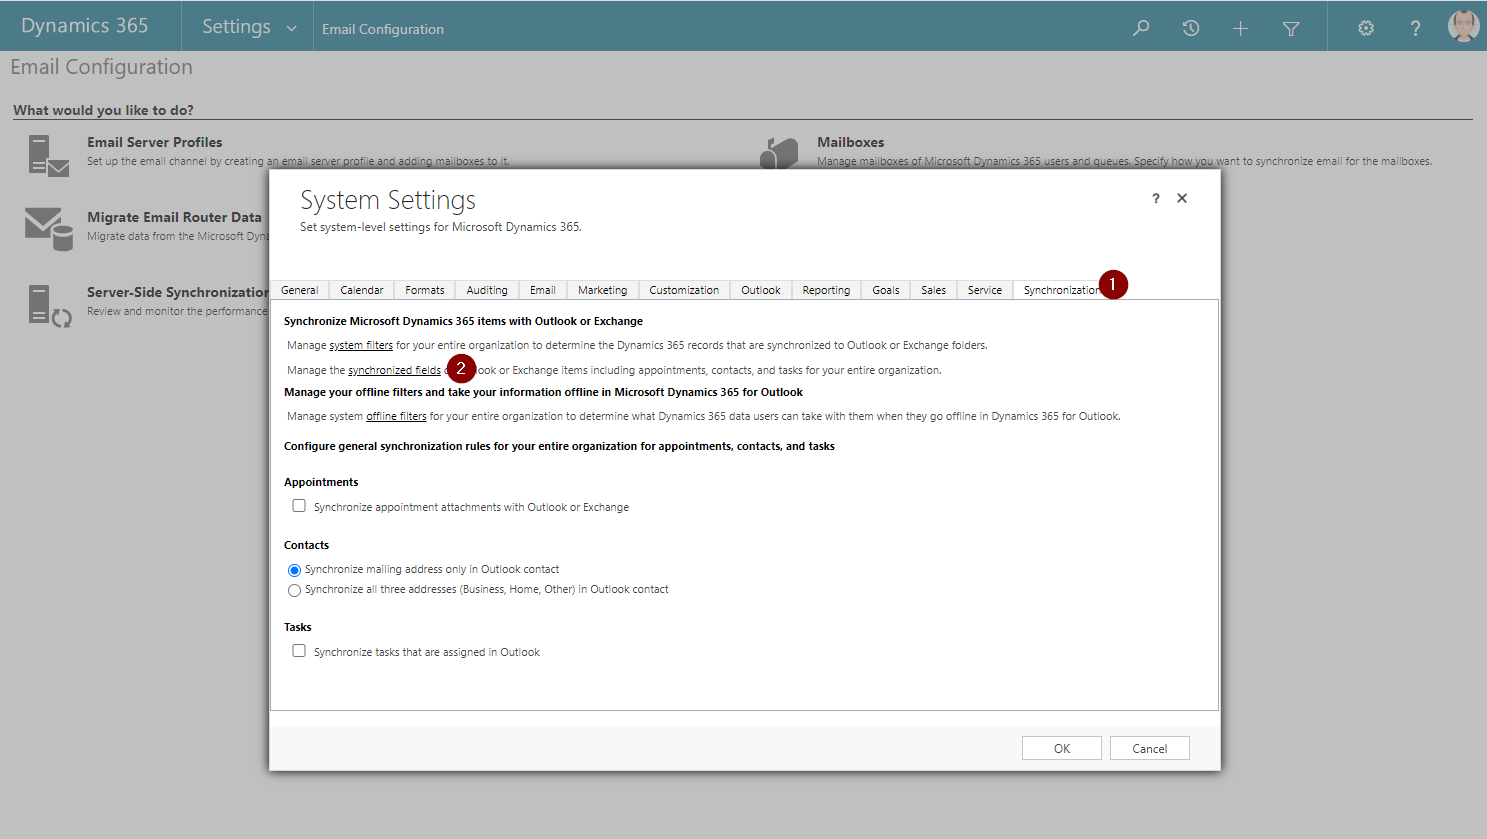 Email Configration Synchronization Dialog